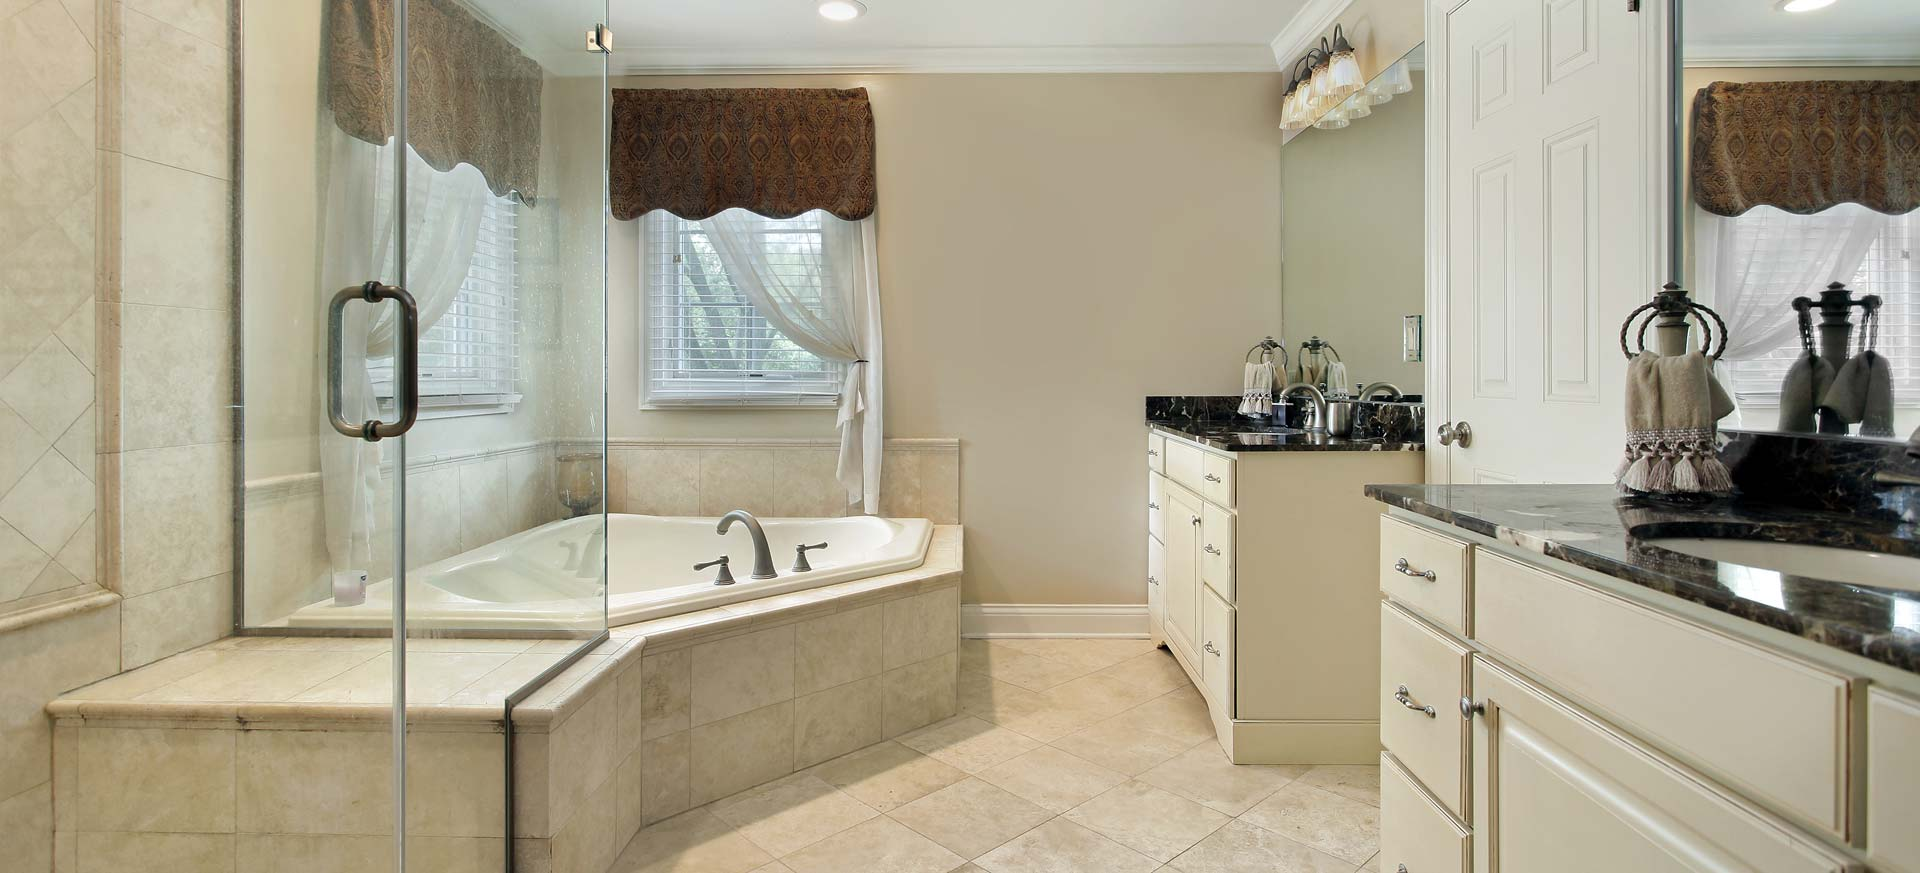 Bathroom Remodeling Raleigh quality one contracting | remodeling & renovations raleigh nc